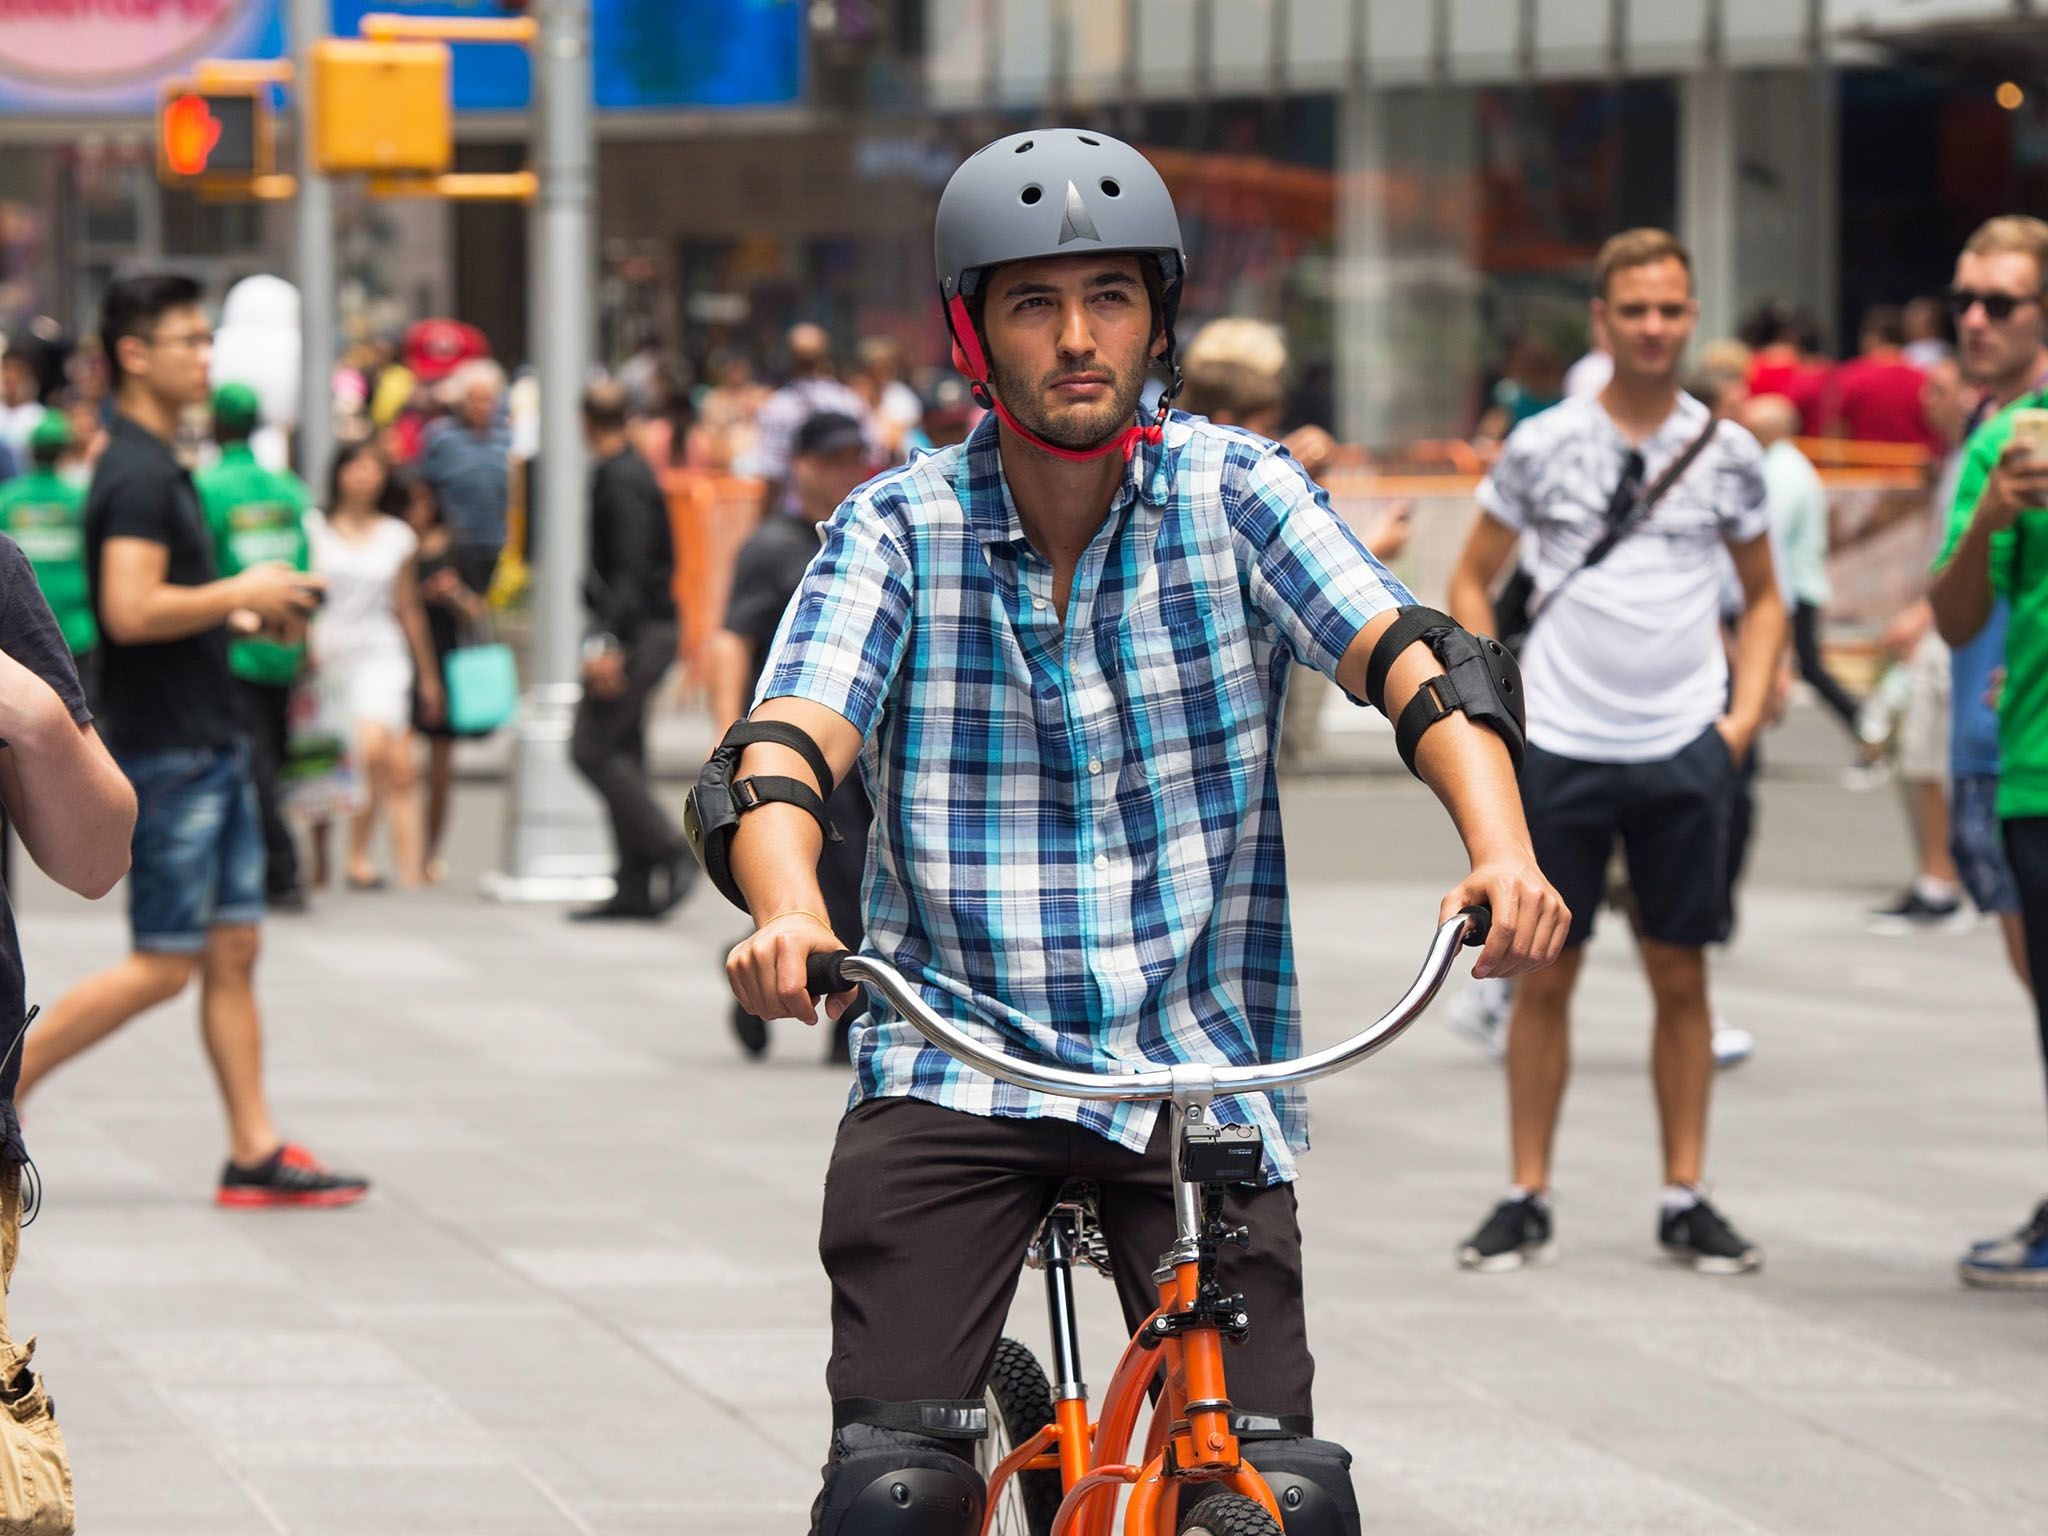 New York City, N.Y.: Jason Silva preparing to ride the Backwards Bike in front of a crowd in... [Photo of the day - فبراير 2016]